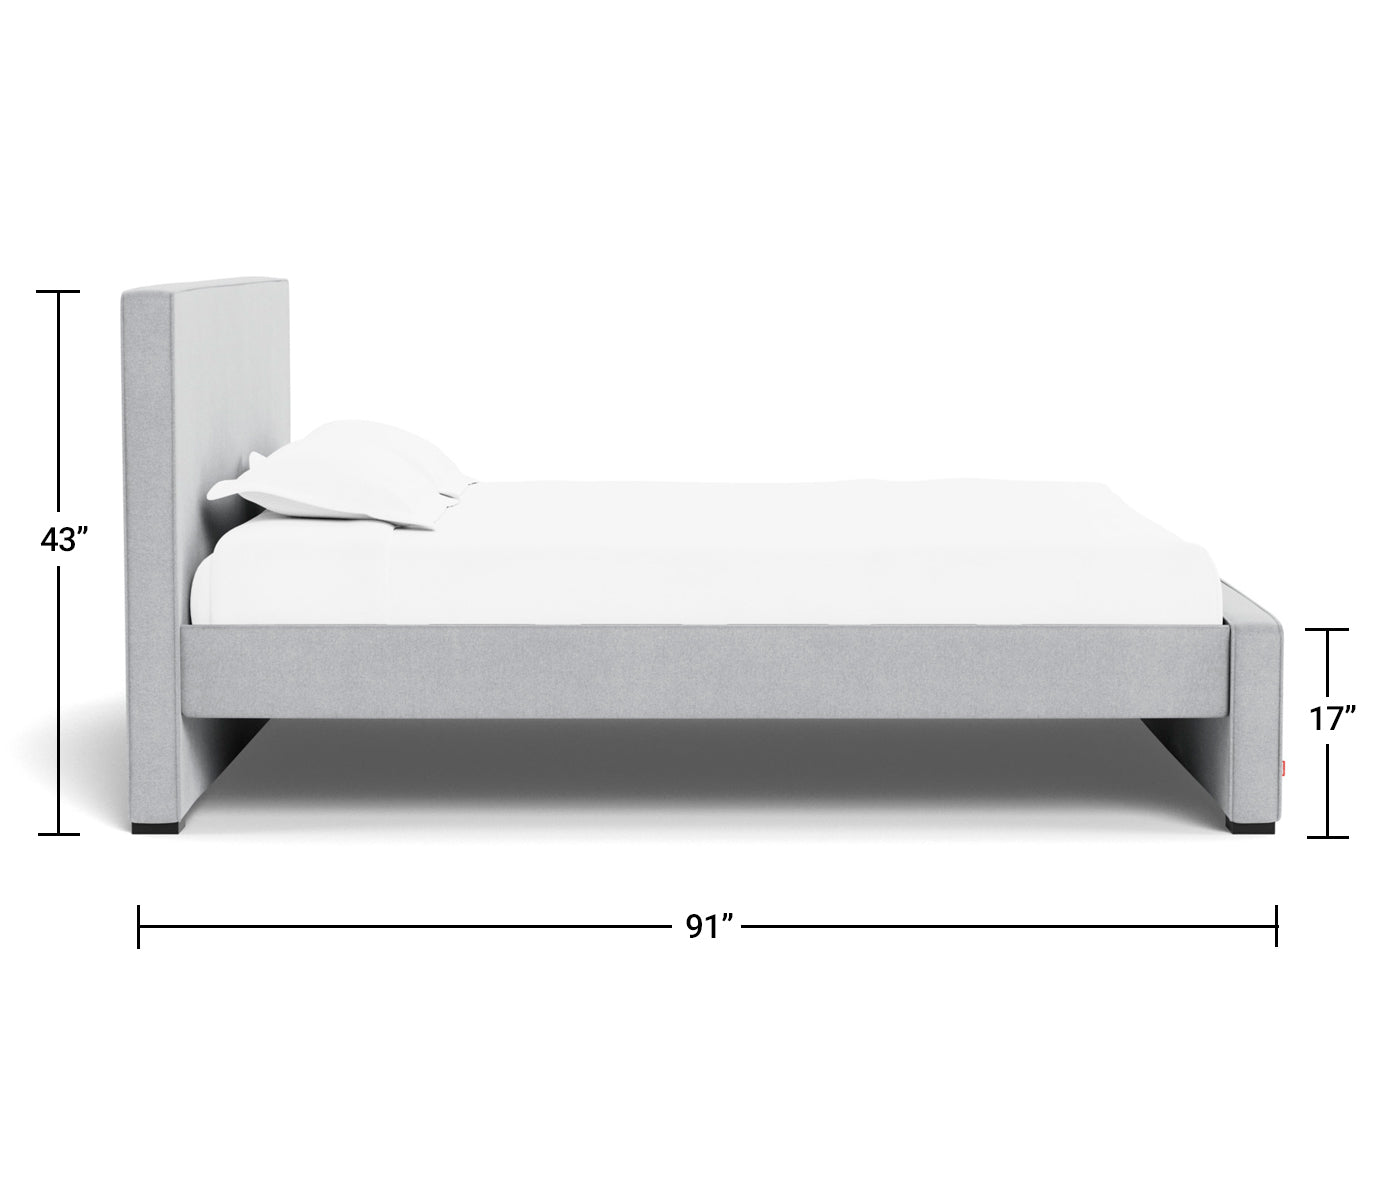 Modern Dorma Bed King Dimensions Side View